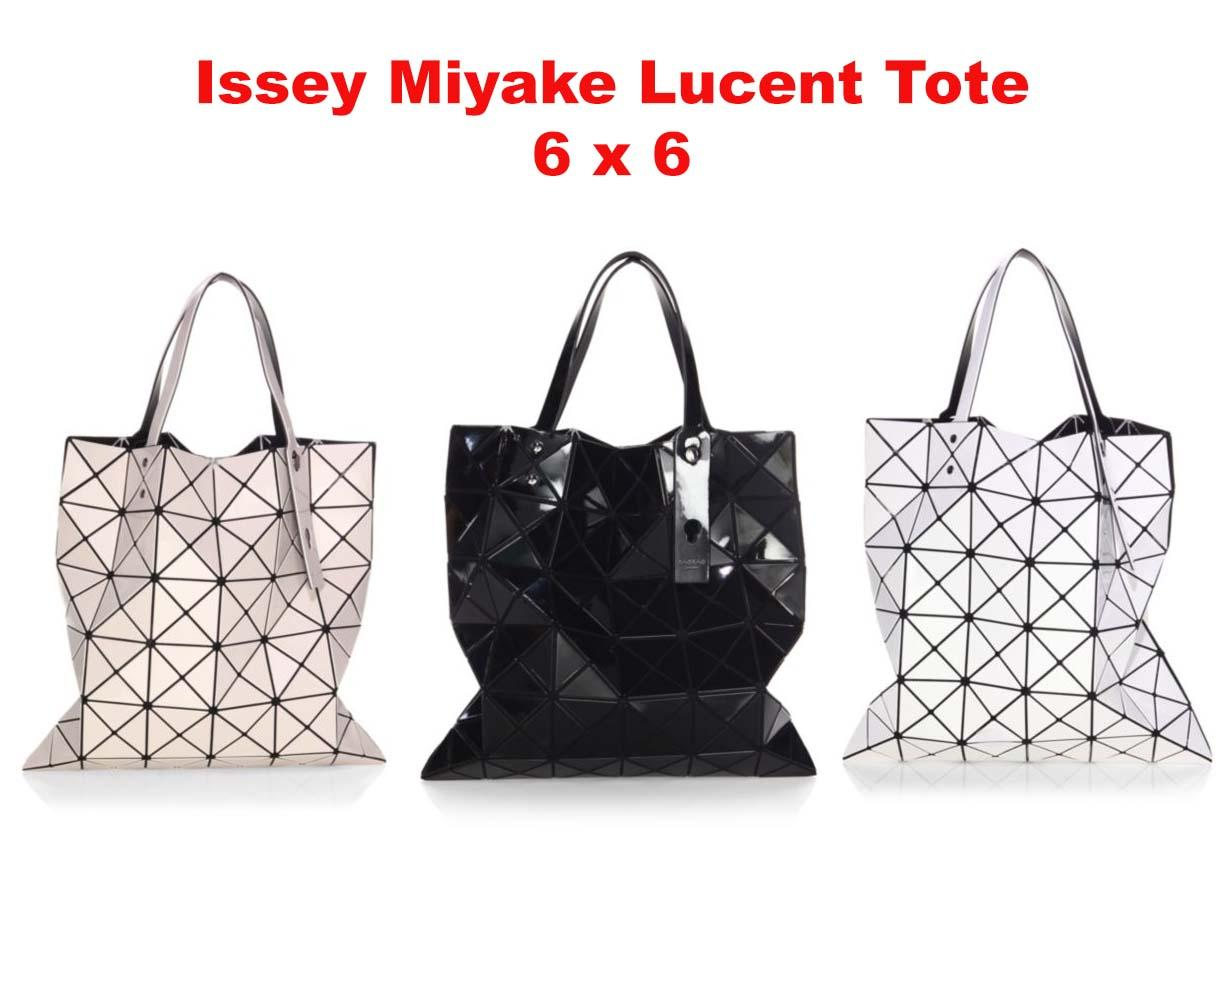 Issey Miyake Lucent Tote Bag / 6 by 6 - With Receipt